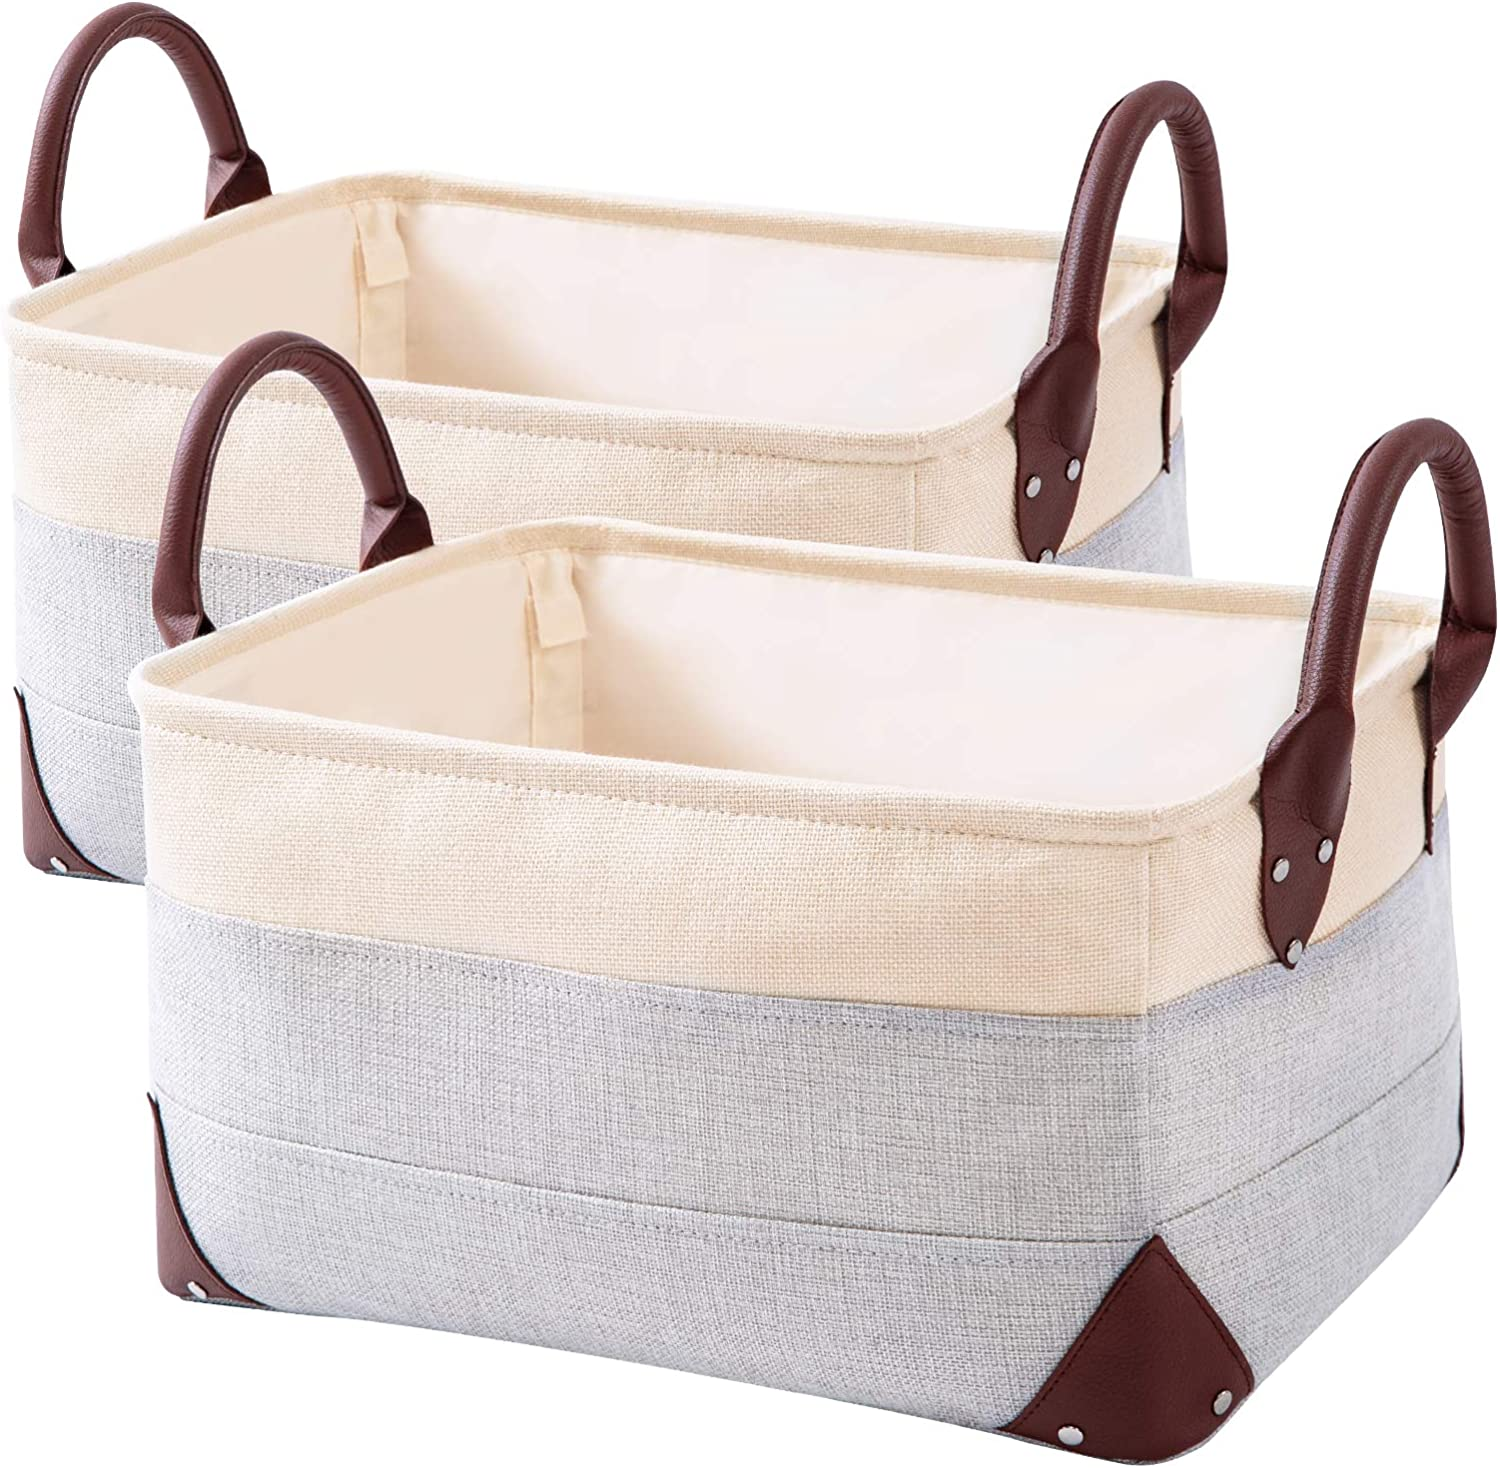 2 Pack Collapsible Storage Bin - Natural Linen Fabric Storage Basket with PU Leather Handles for Home Office Organizing Linen Closet Organizer -16 x 12 x 8.3 inches (Beige+Gray)